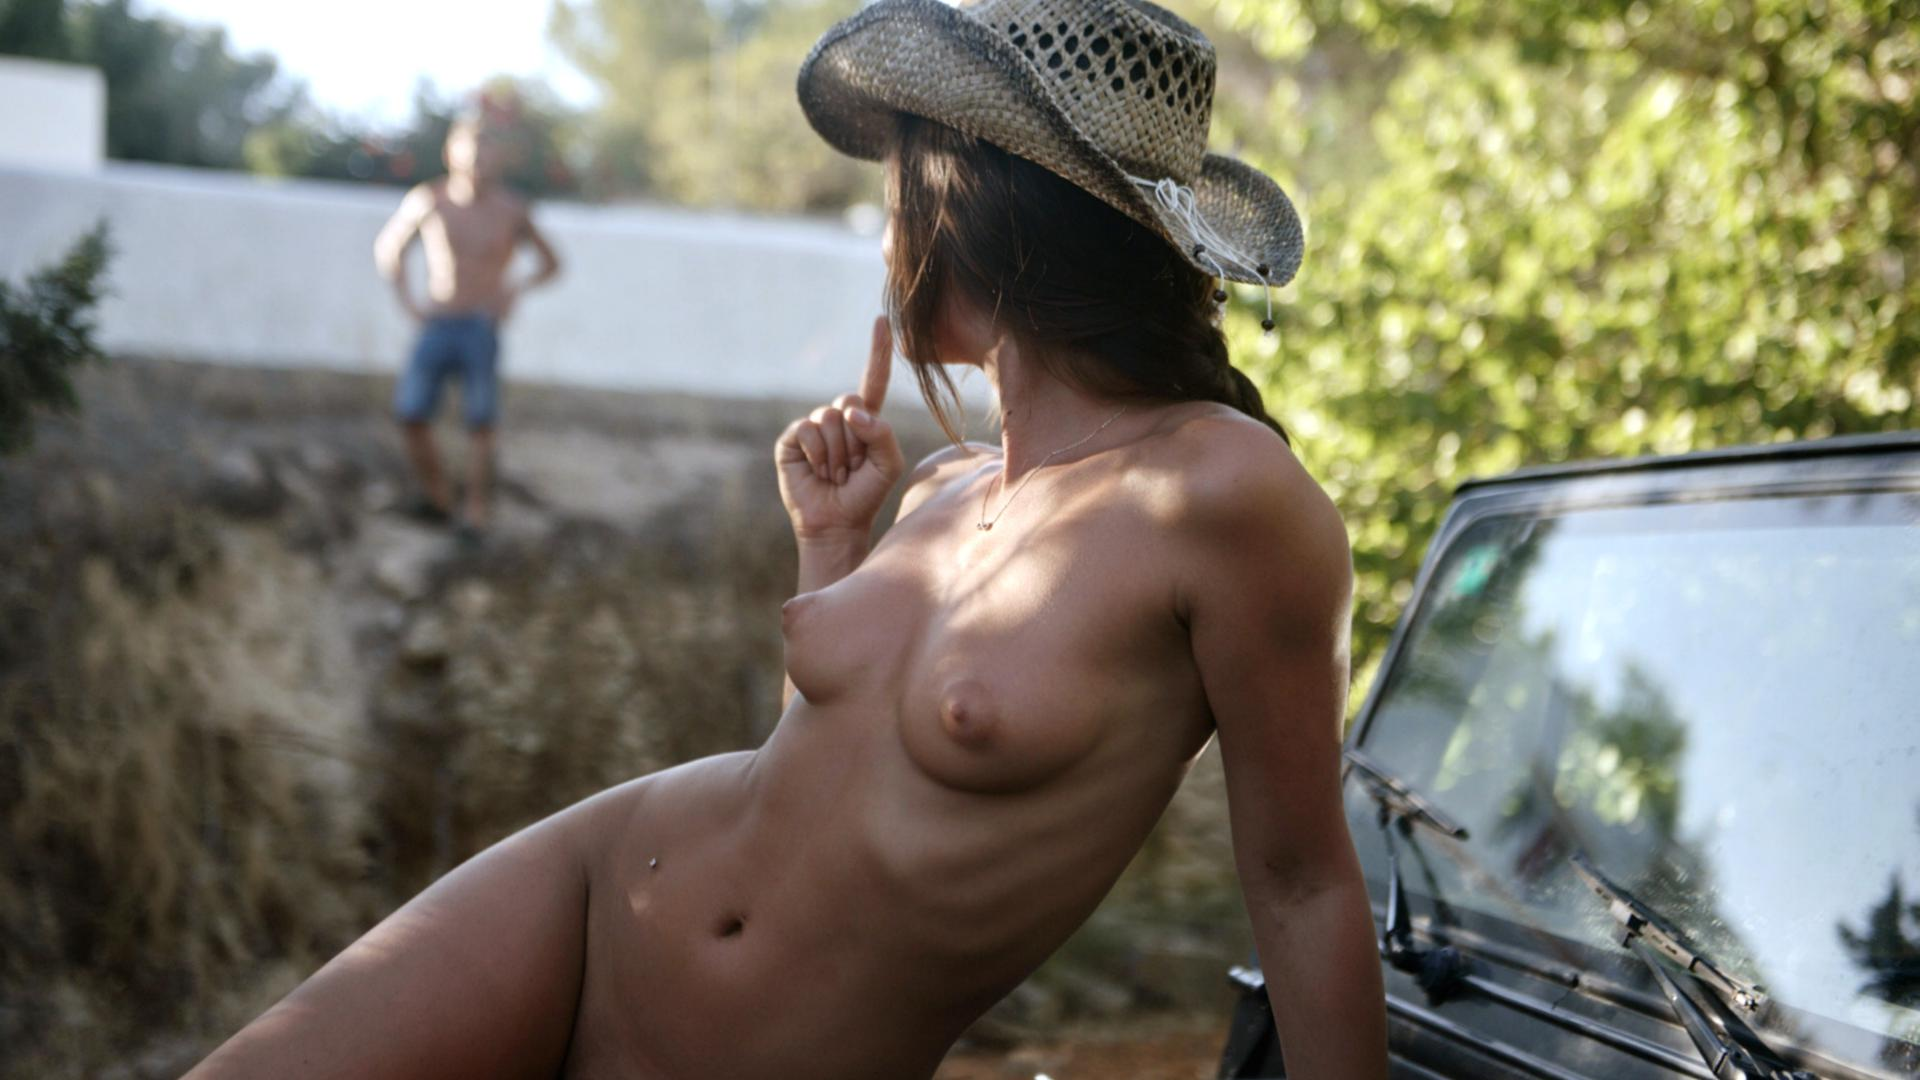 Sexy Naked Country Girl Wearing Cowboy Hat